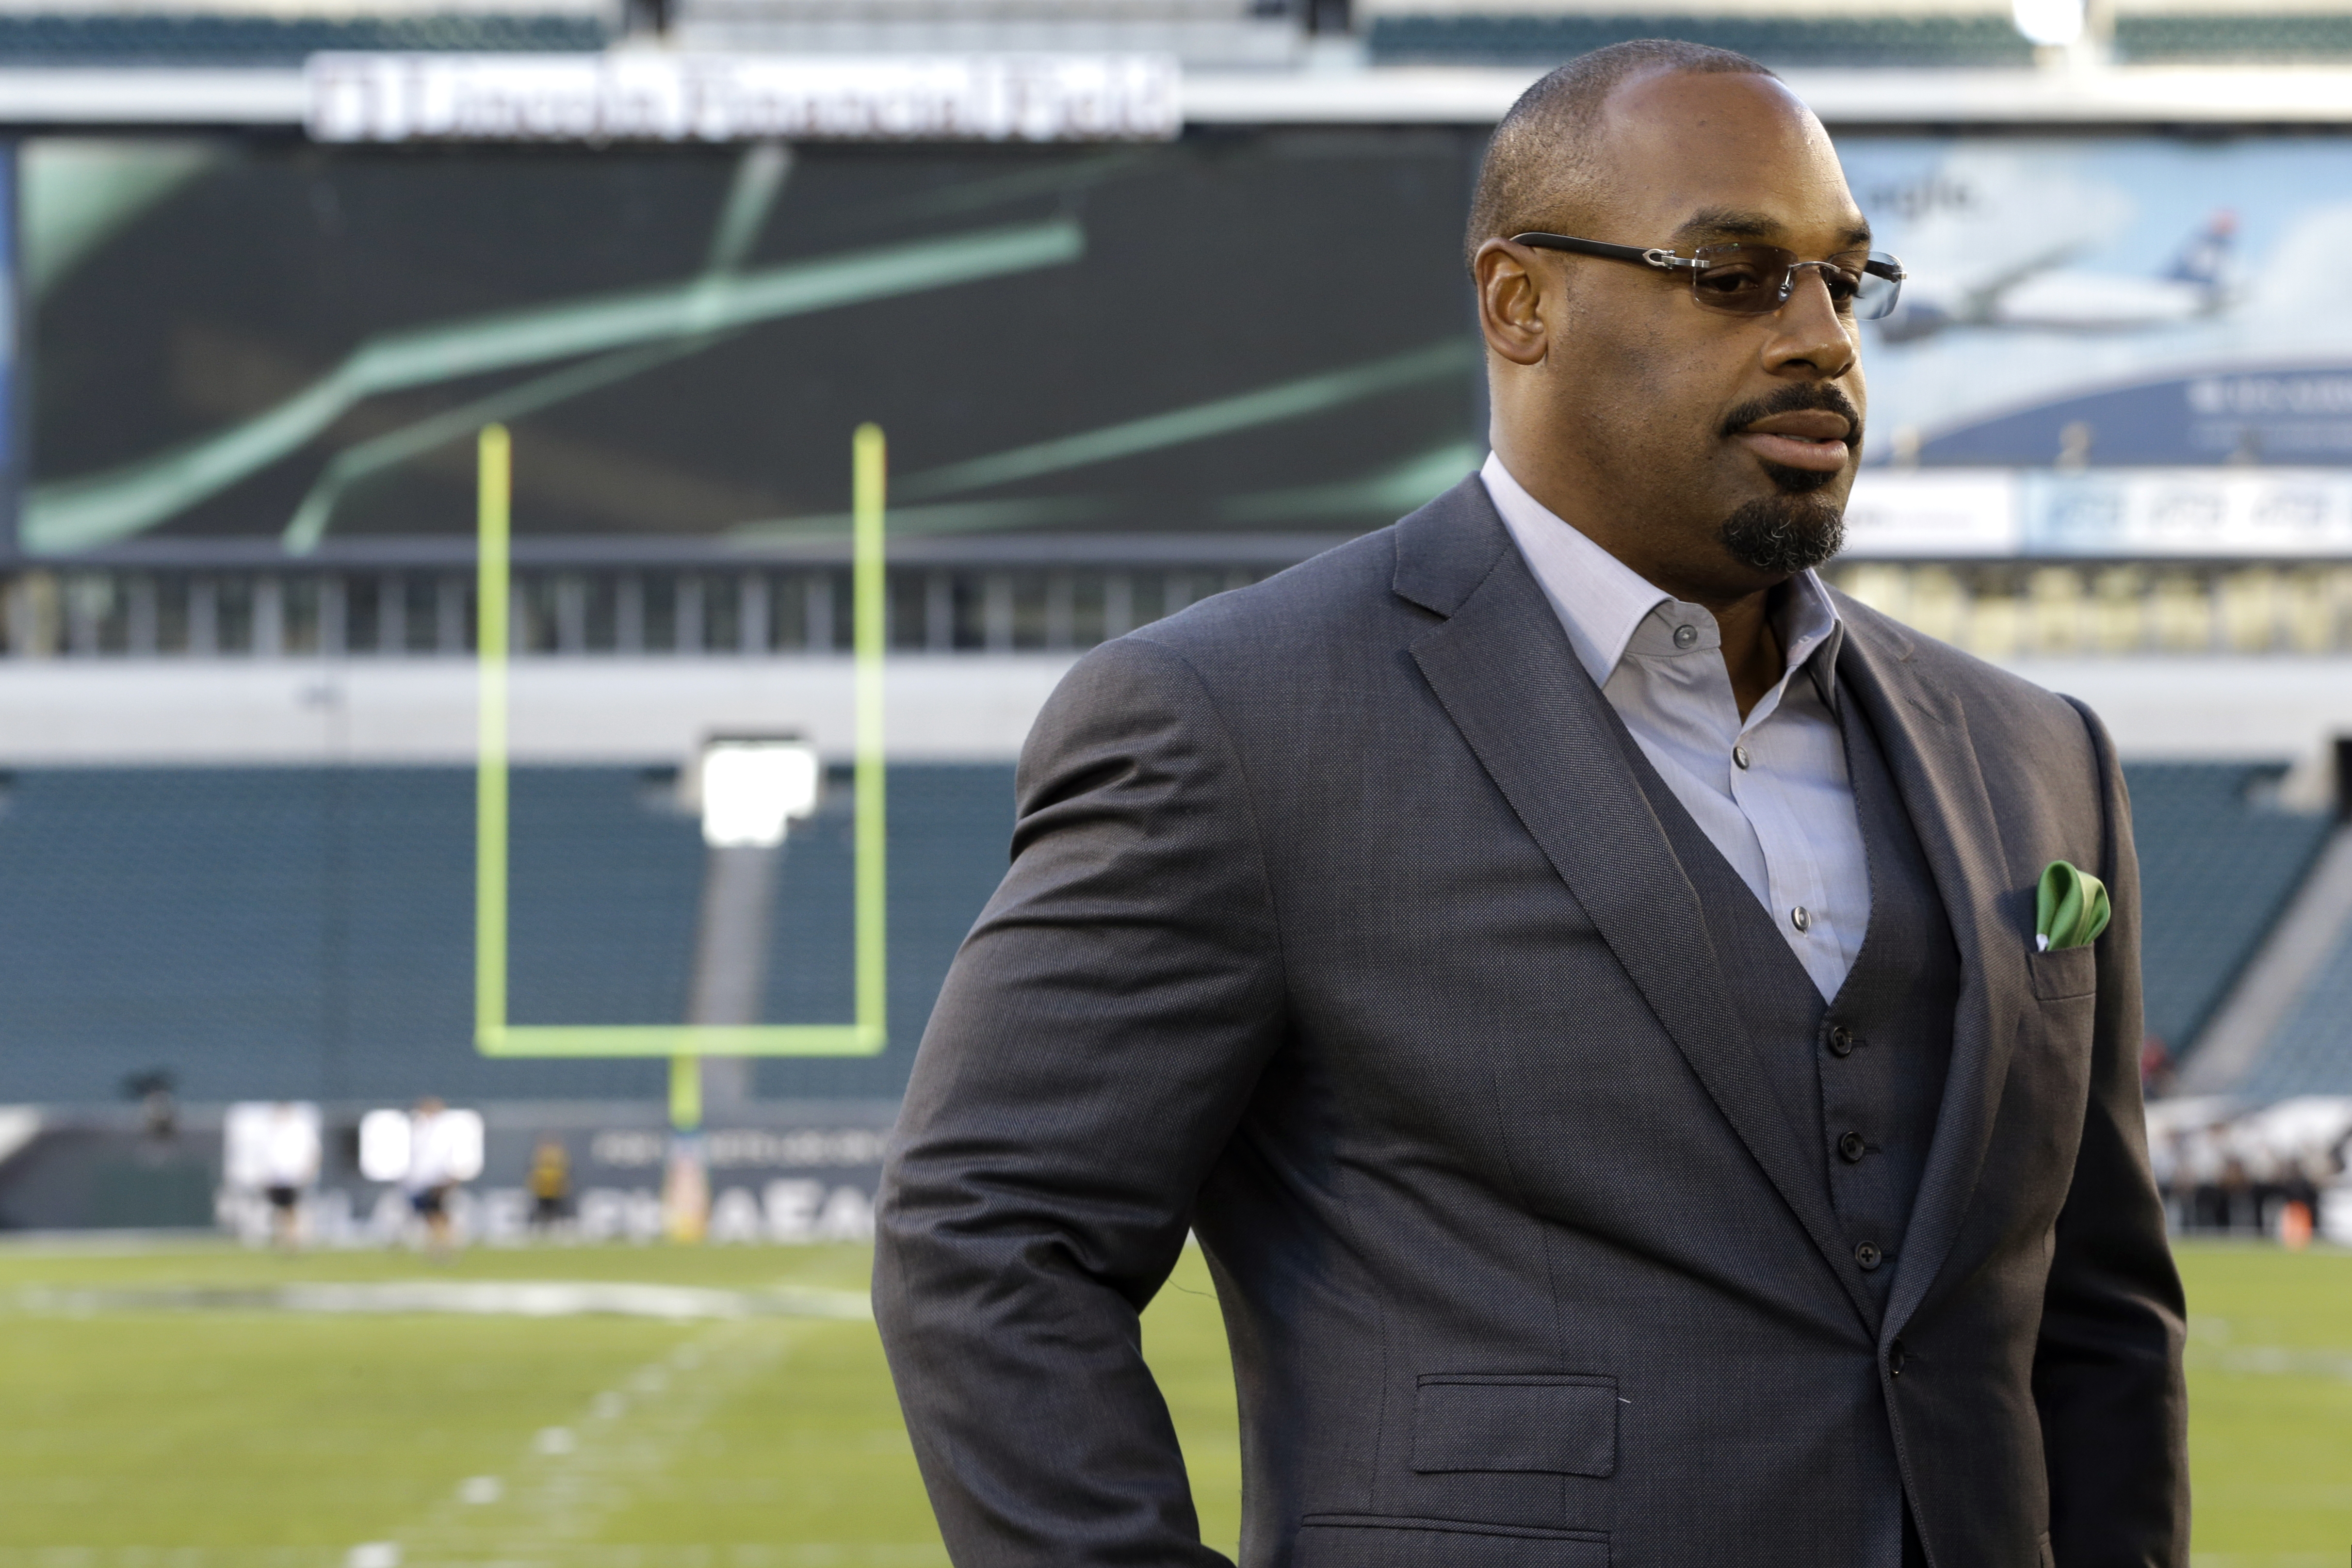 FILE - In this Sept. 19, 2013, file photo, former Philadelphia Eagles quarterback Donovan McNabb pauses during a television interview before an NFL football game against the Kansas City Chiefs, in Philadelphia. McNabb will serve 18 days in an Arizona jail